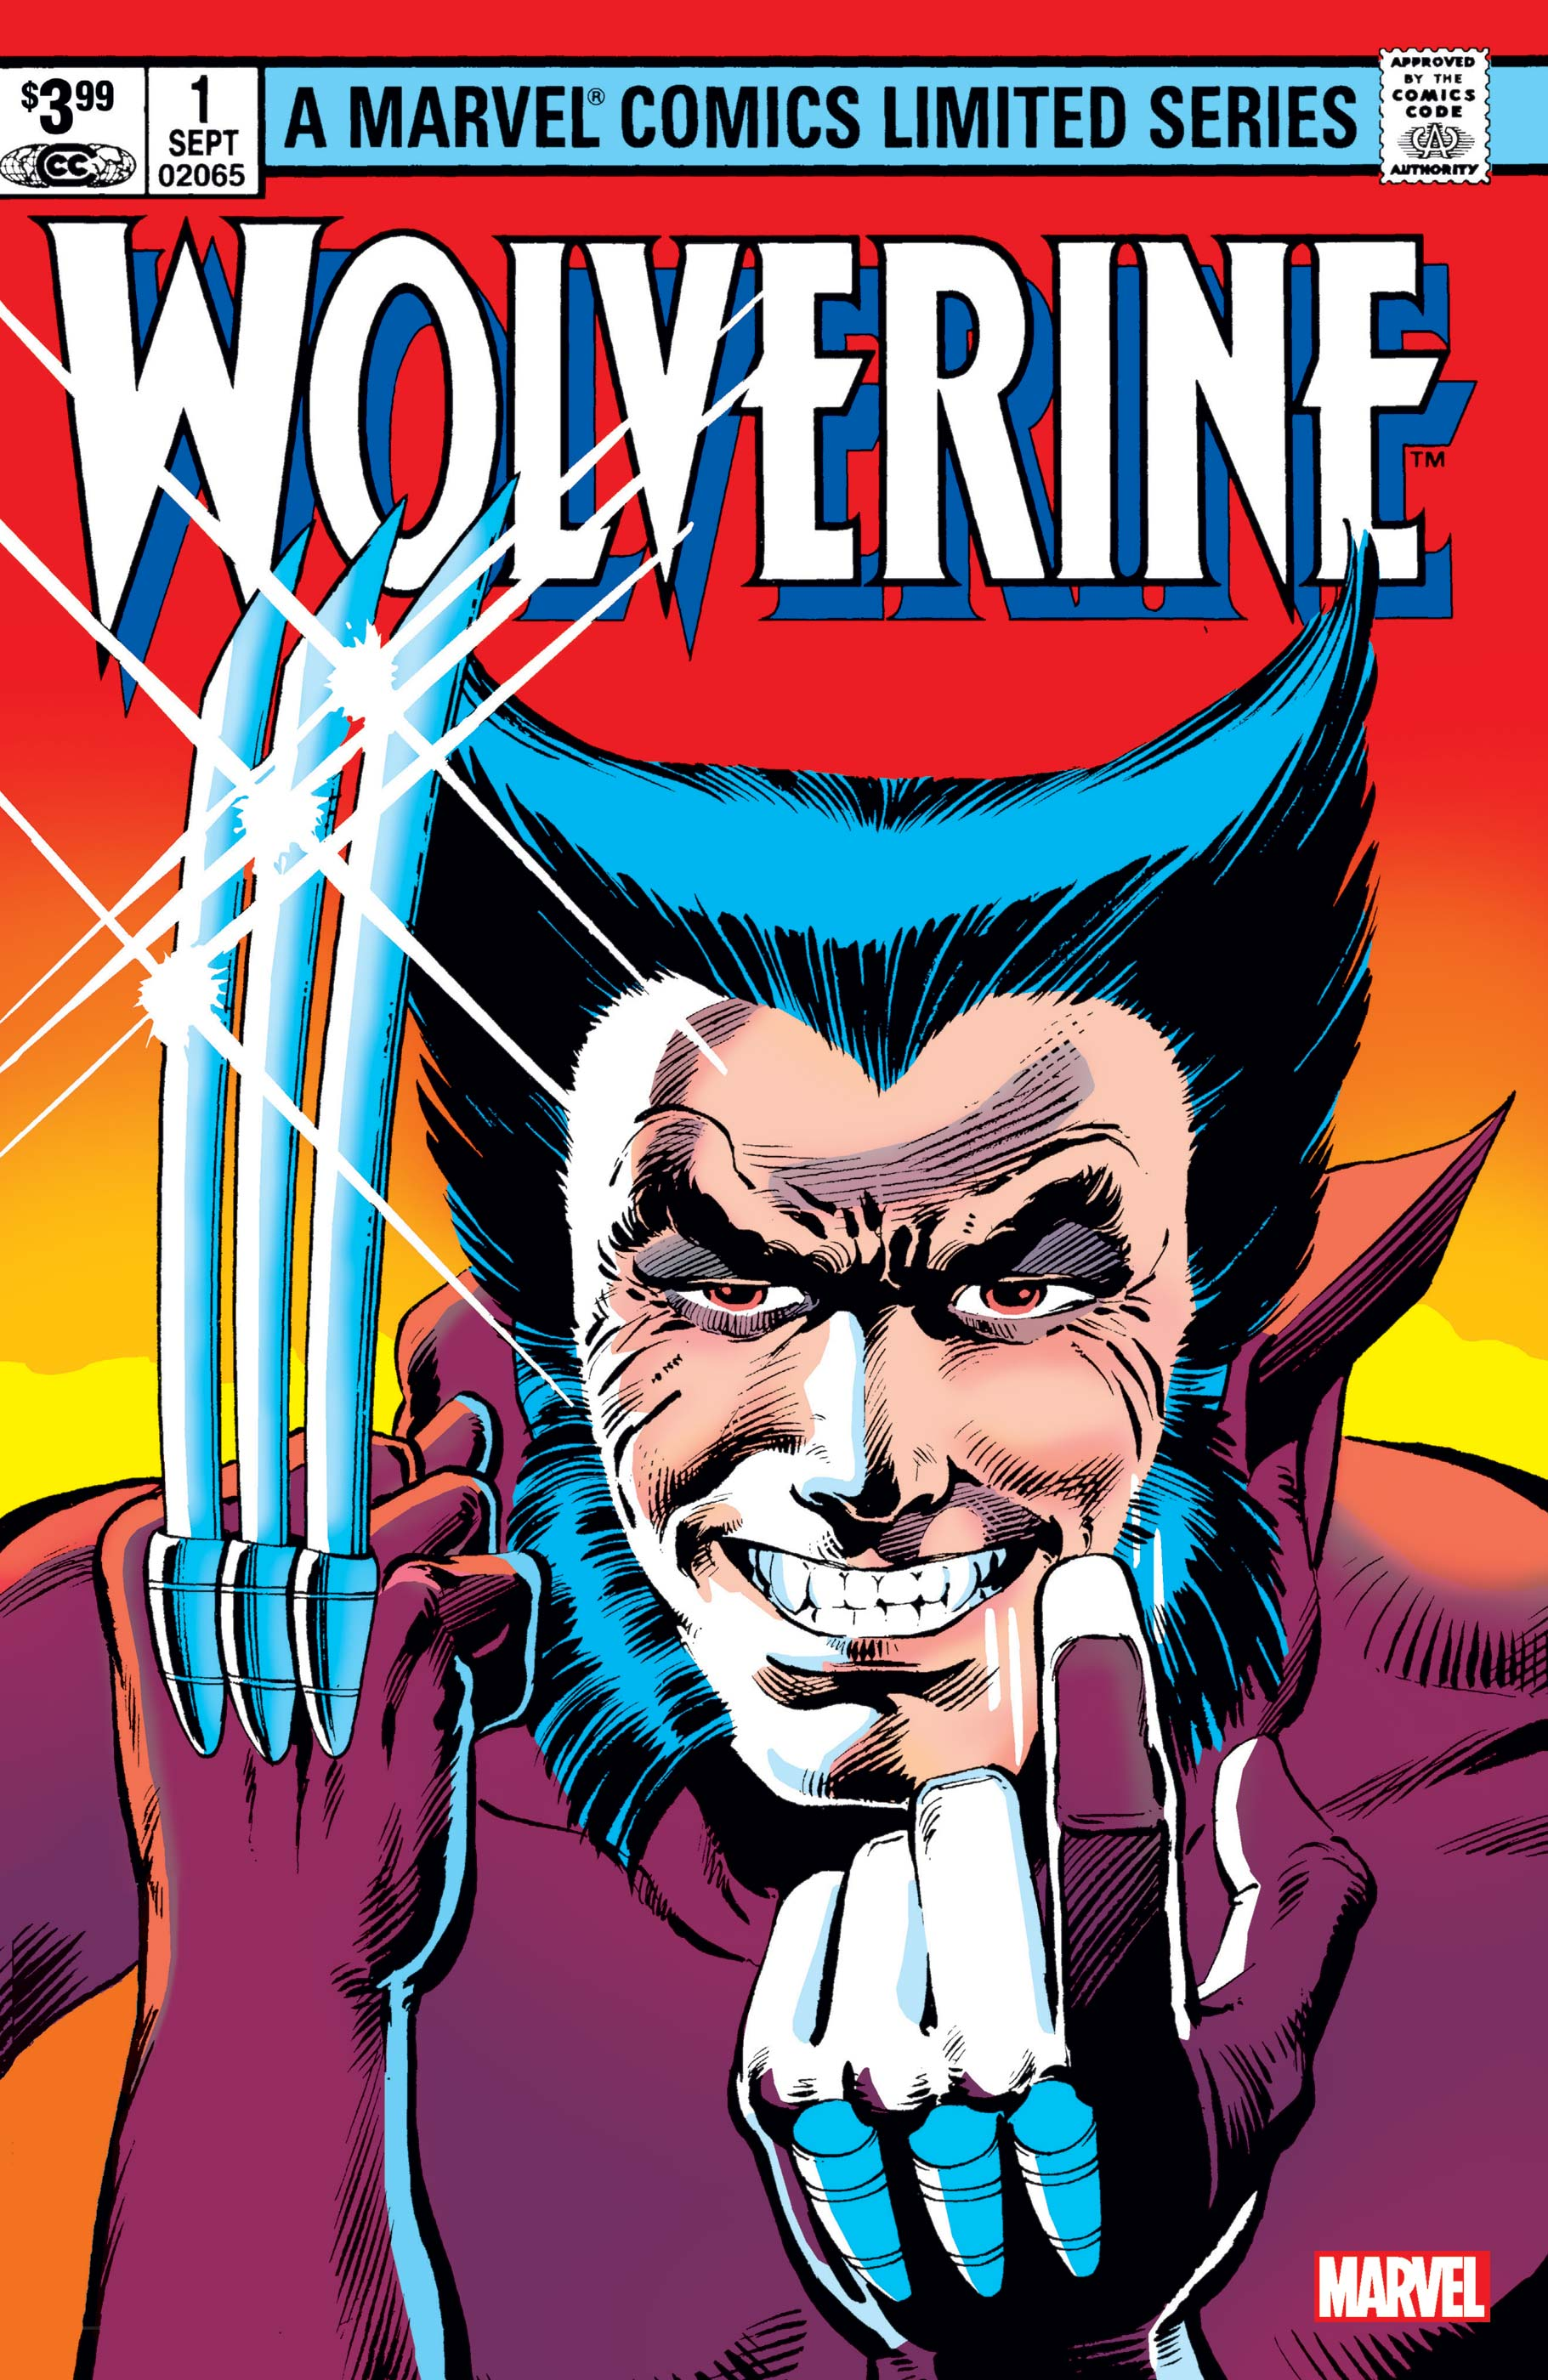 Wolverine by Claremont & Miller Facsimile Edition (2020) #1